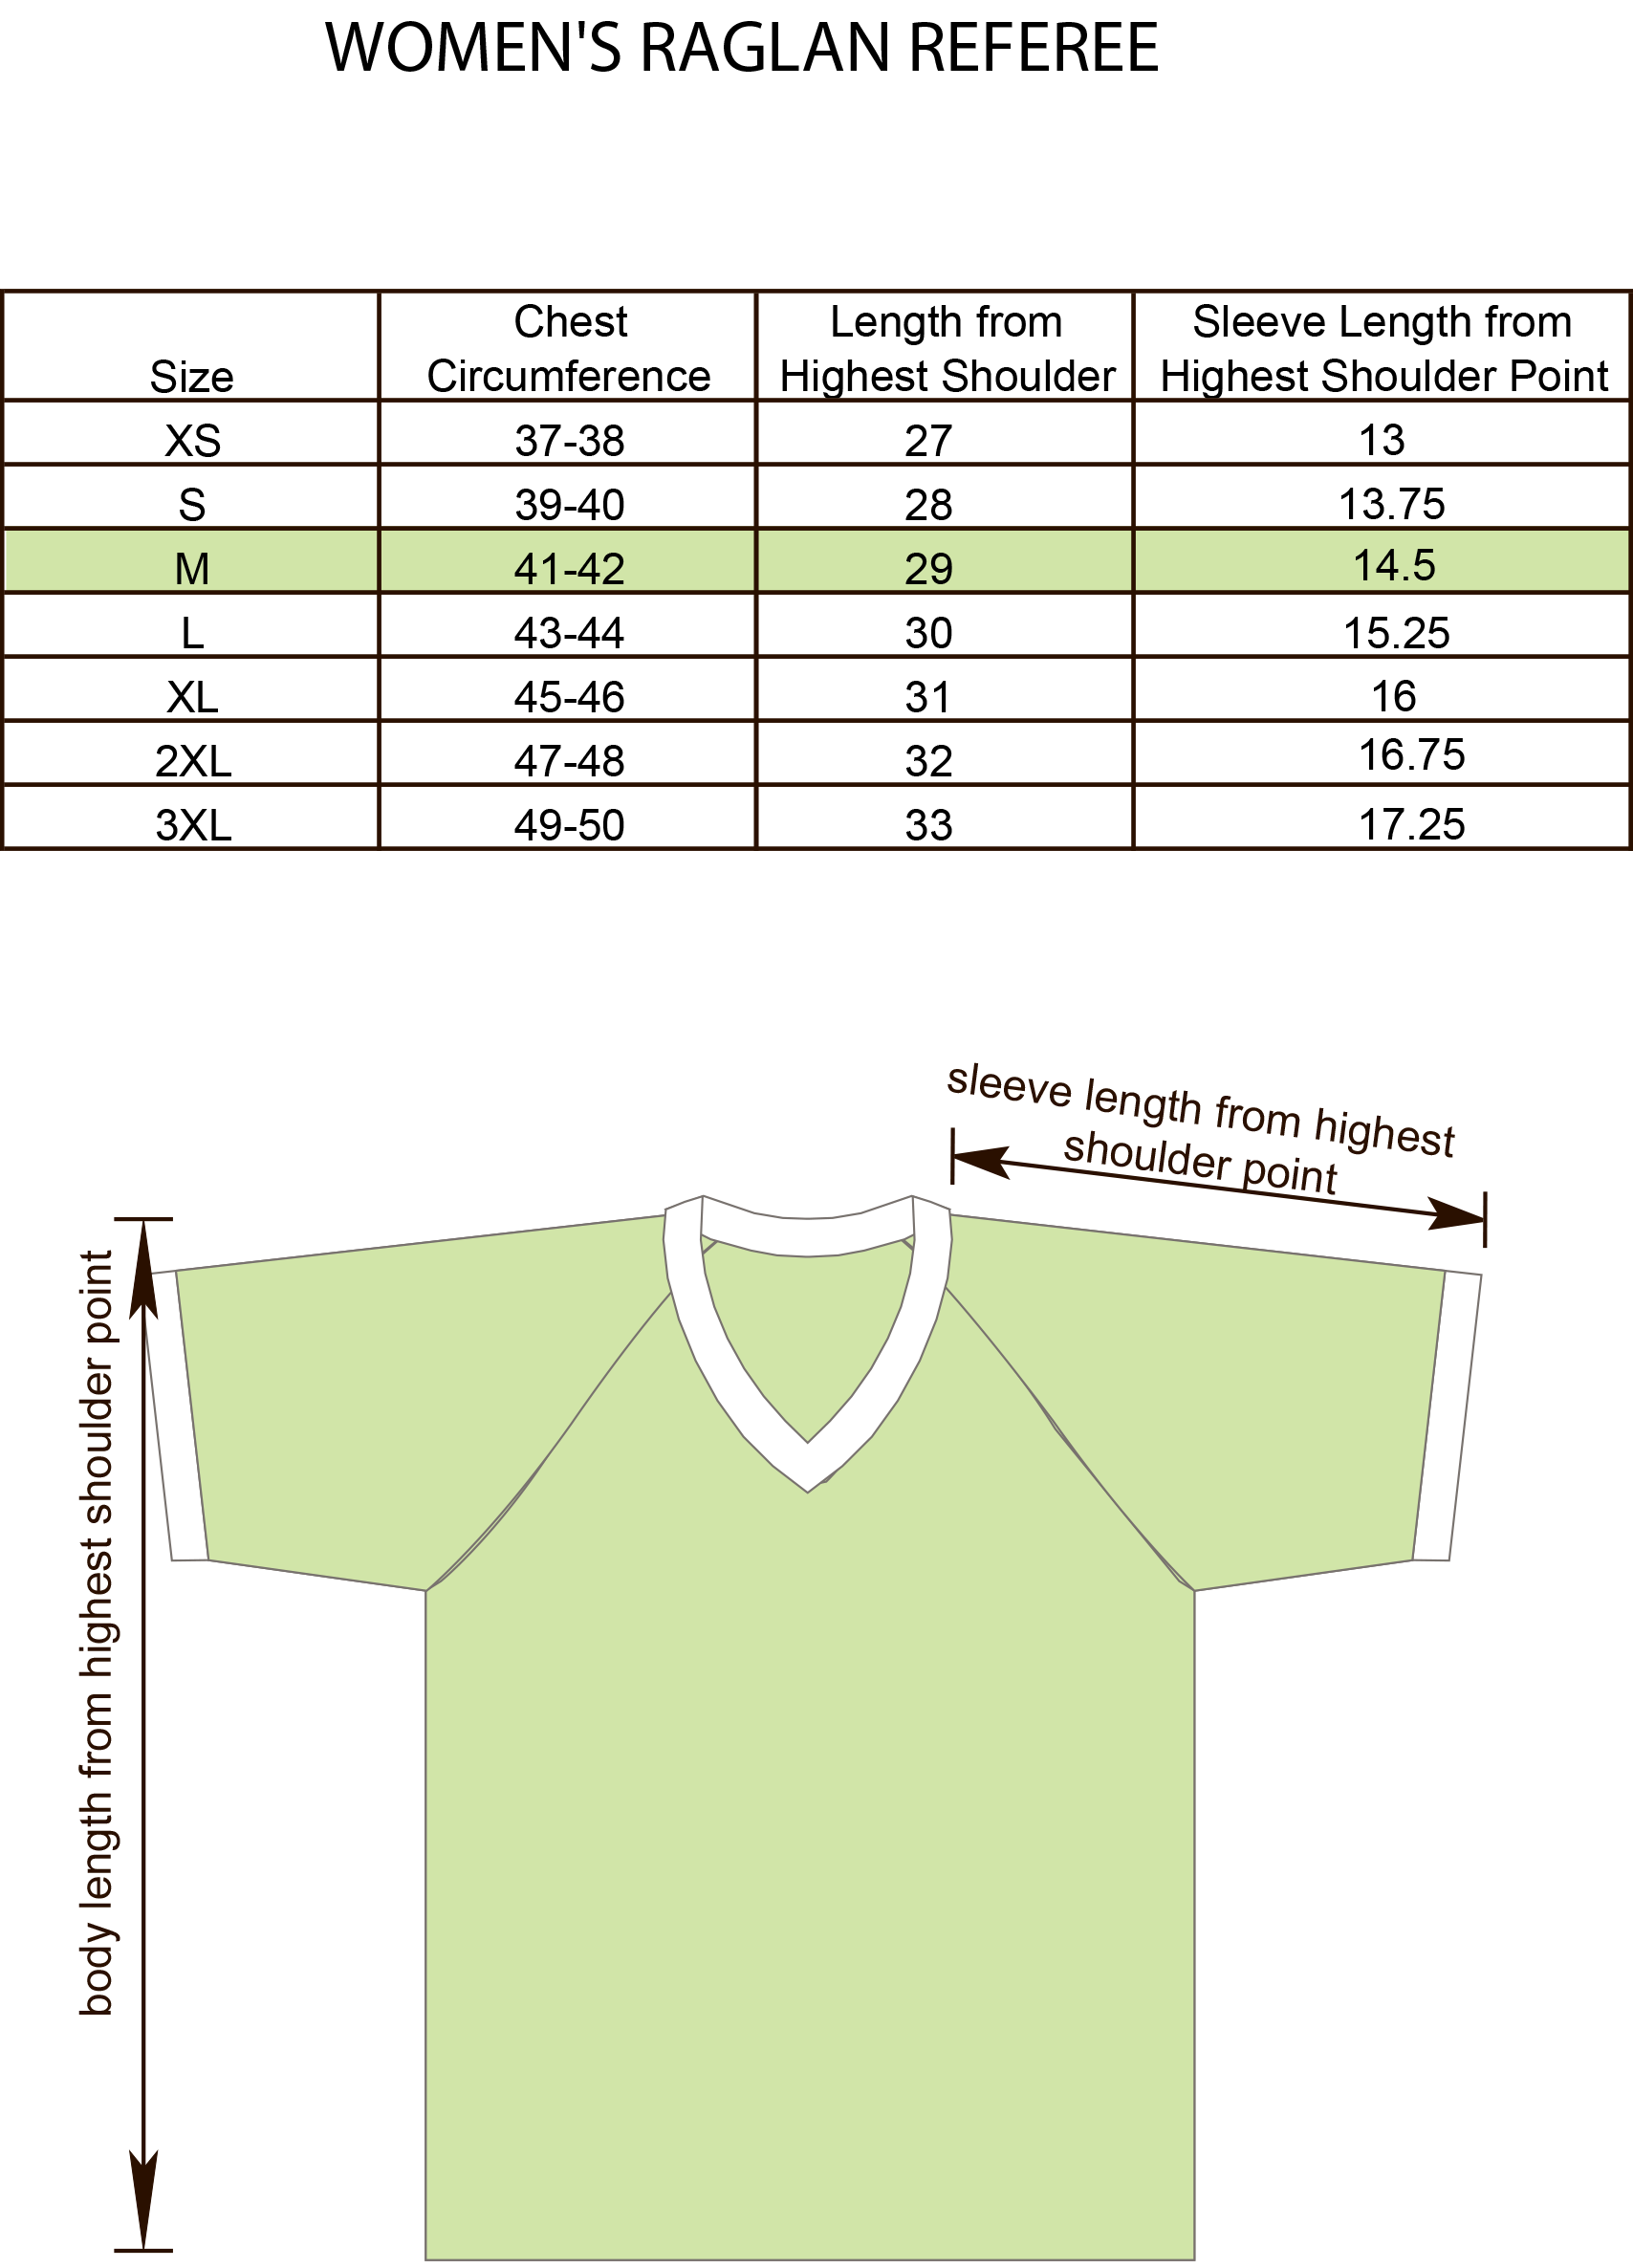 Womens Referee Raglan Shirt Size Chart Image